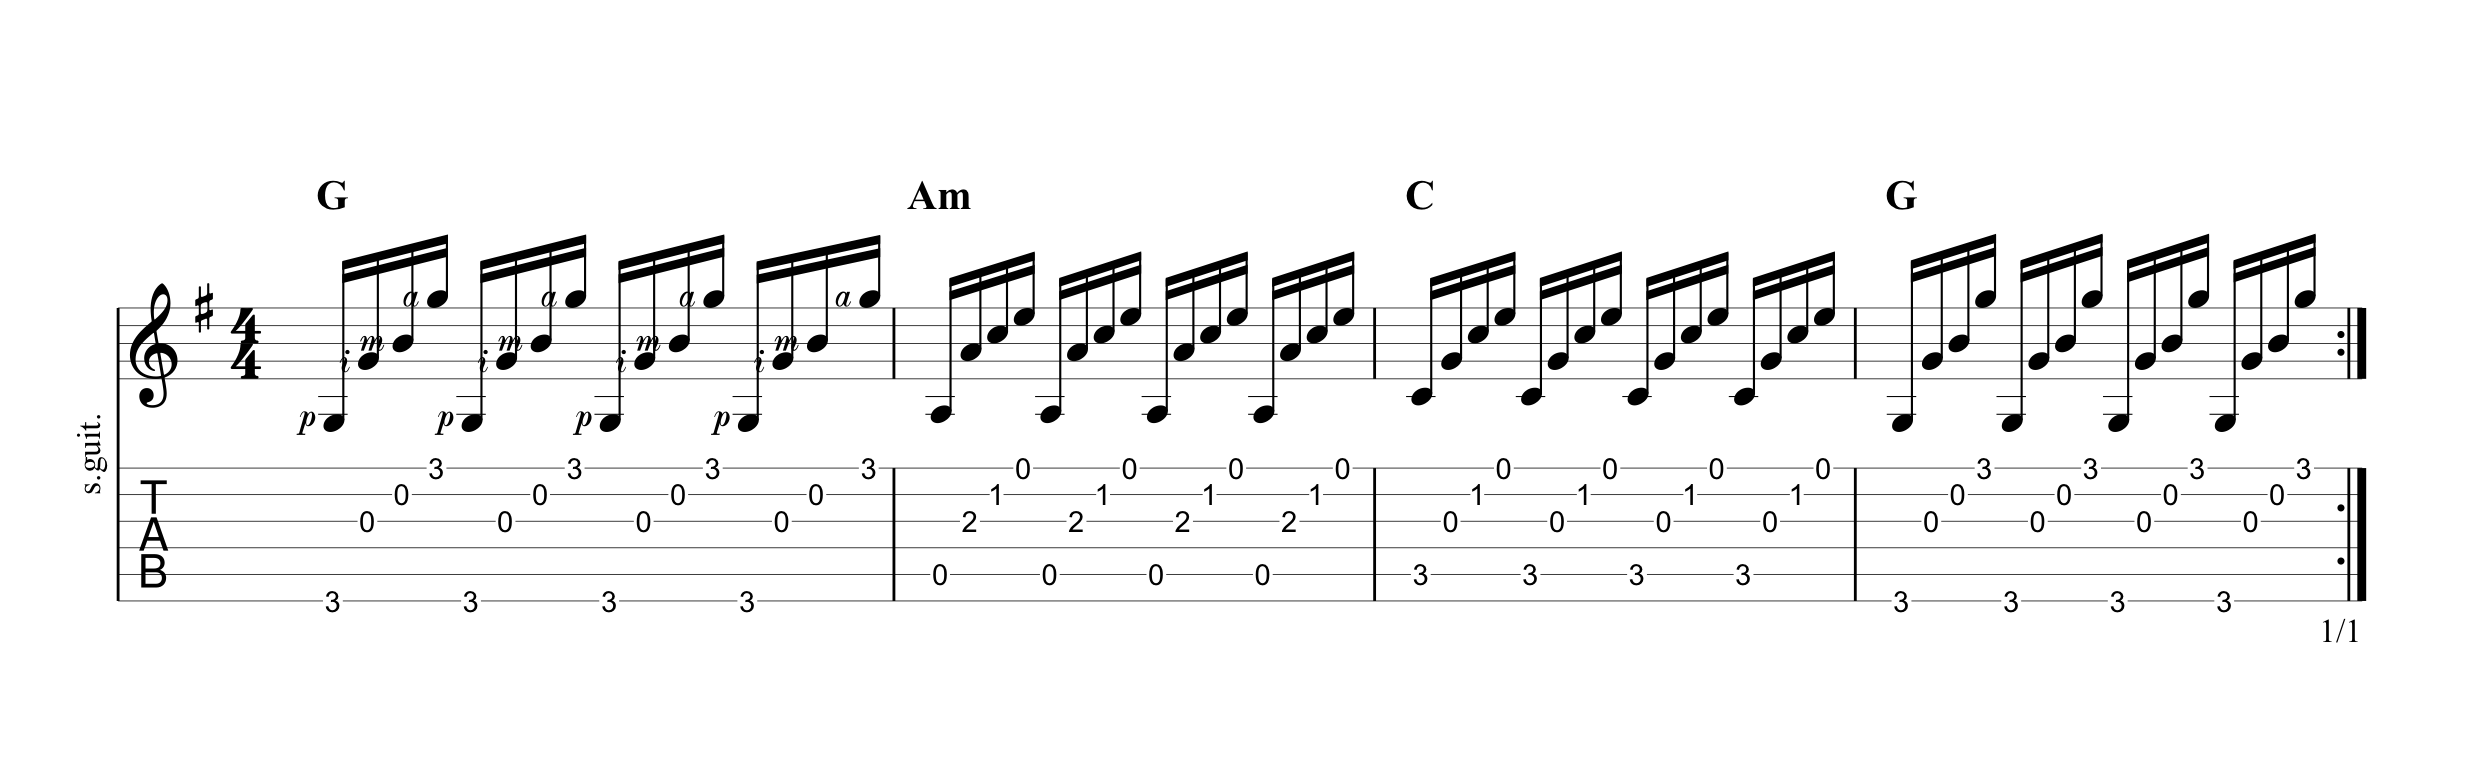 Fingerpicking Pattern 4